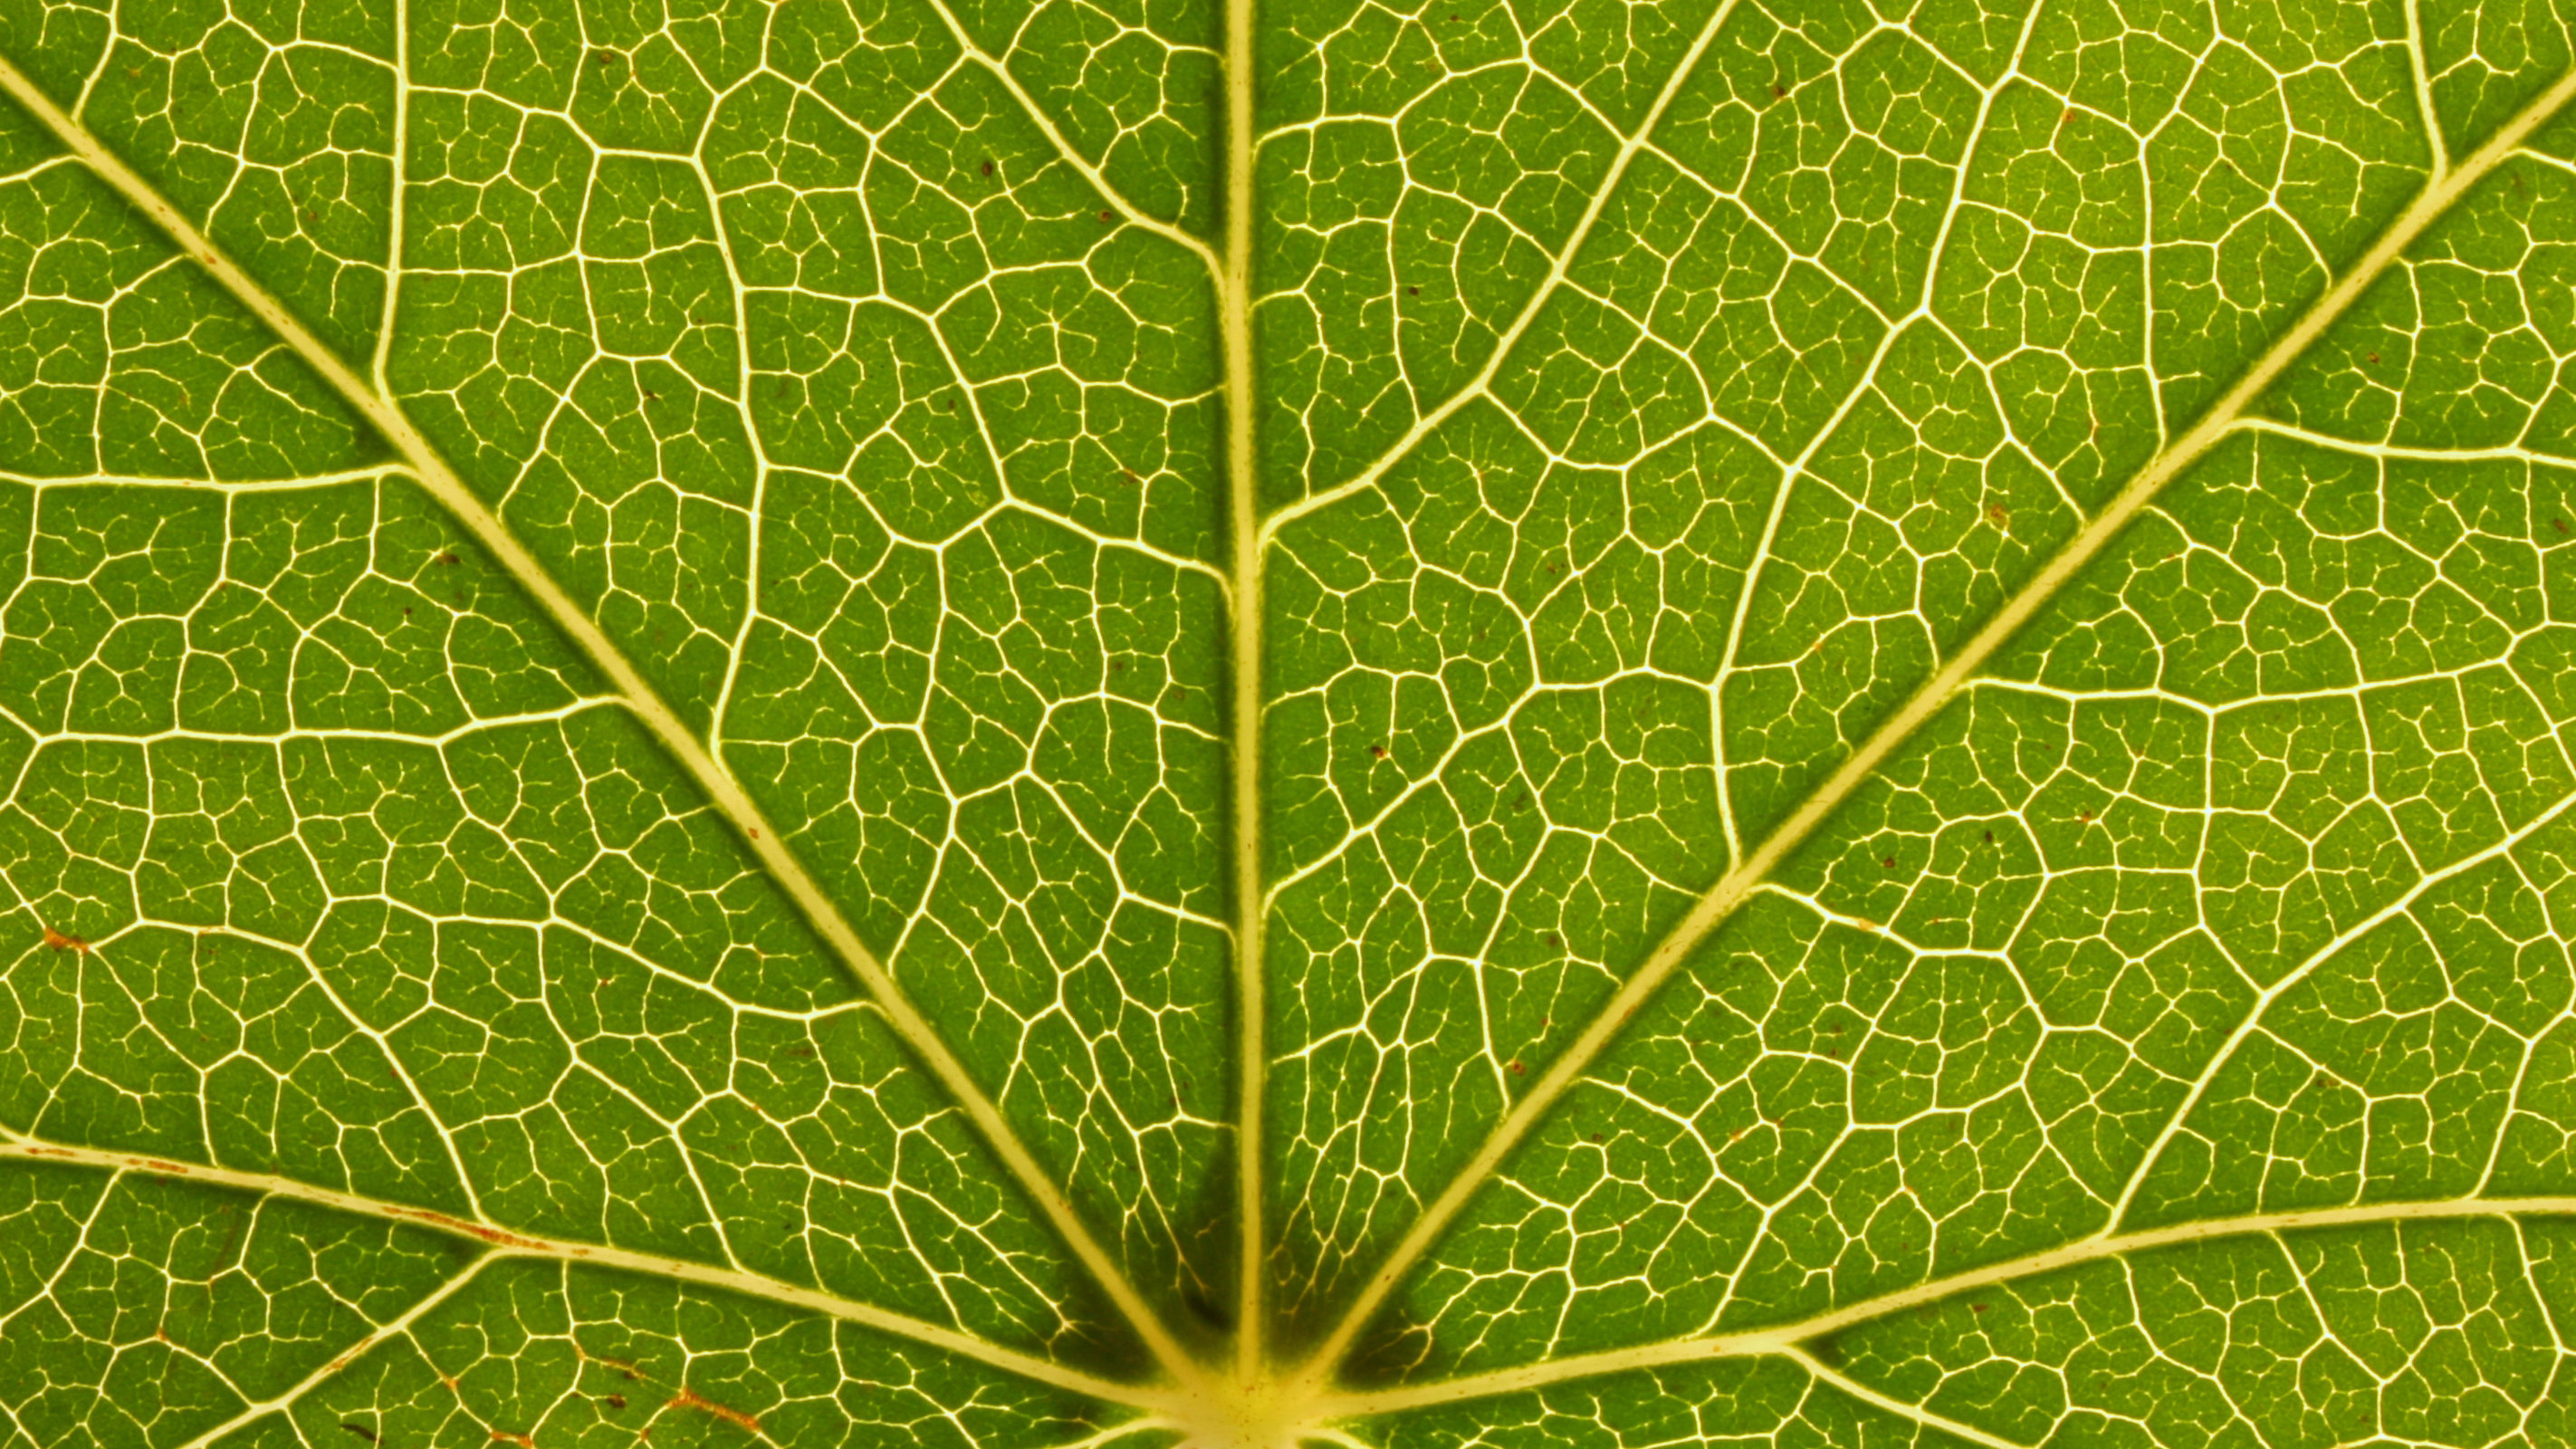 a close up shot of a leaf showing its fractal pattern